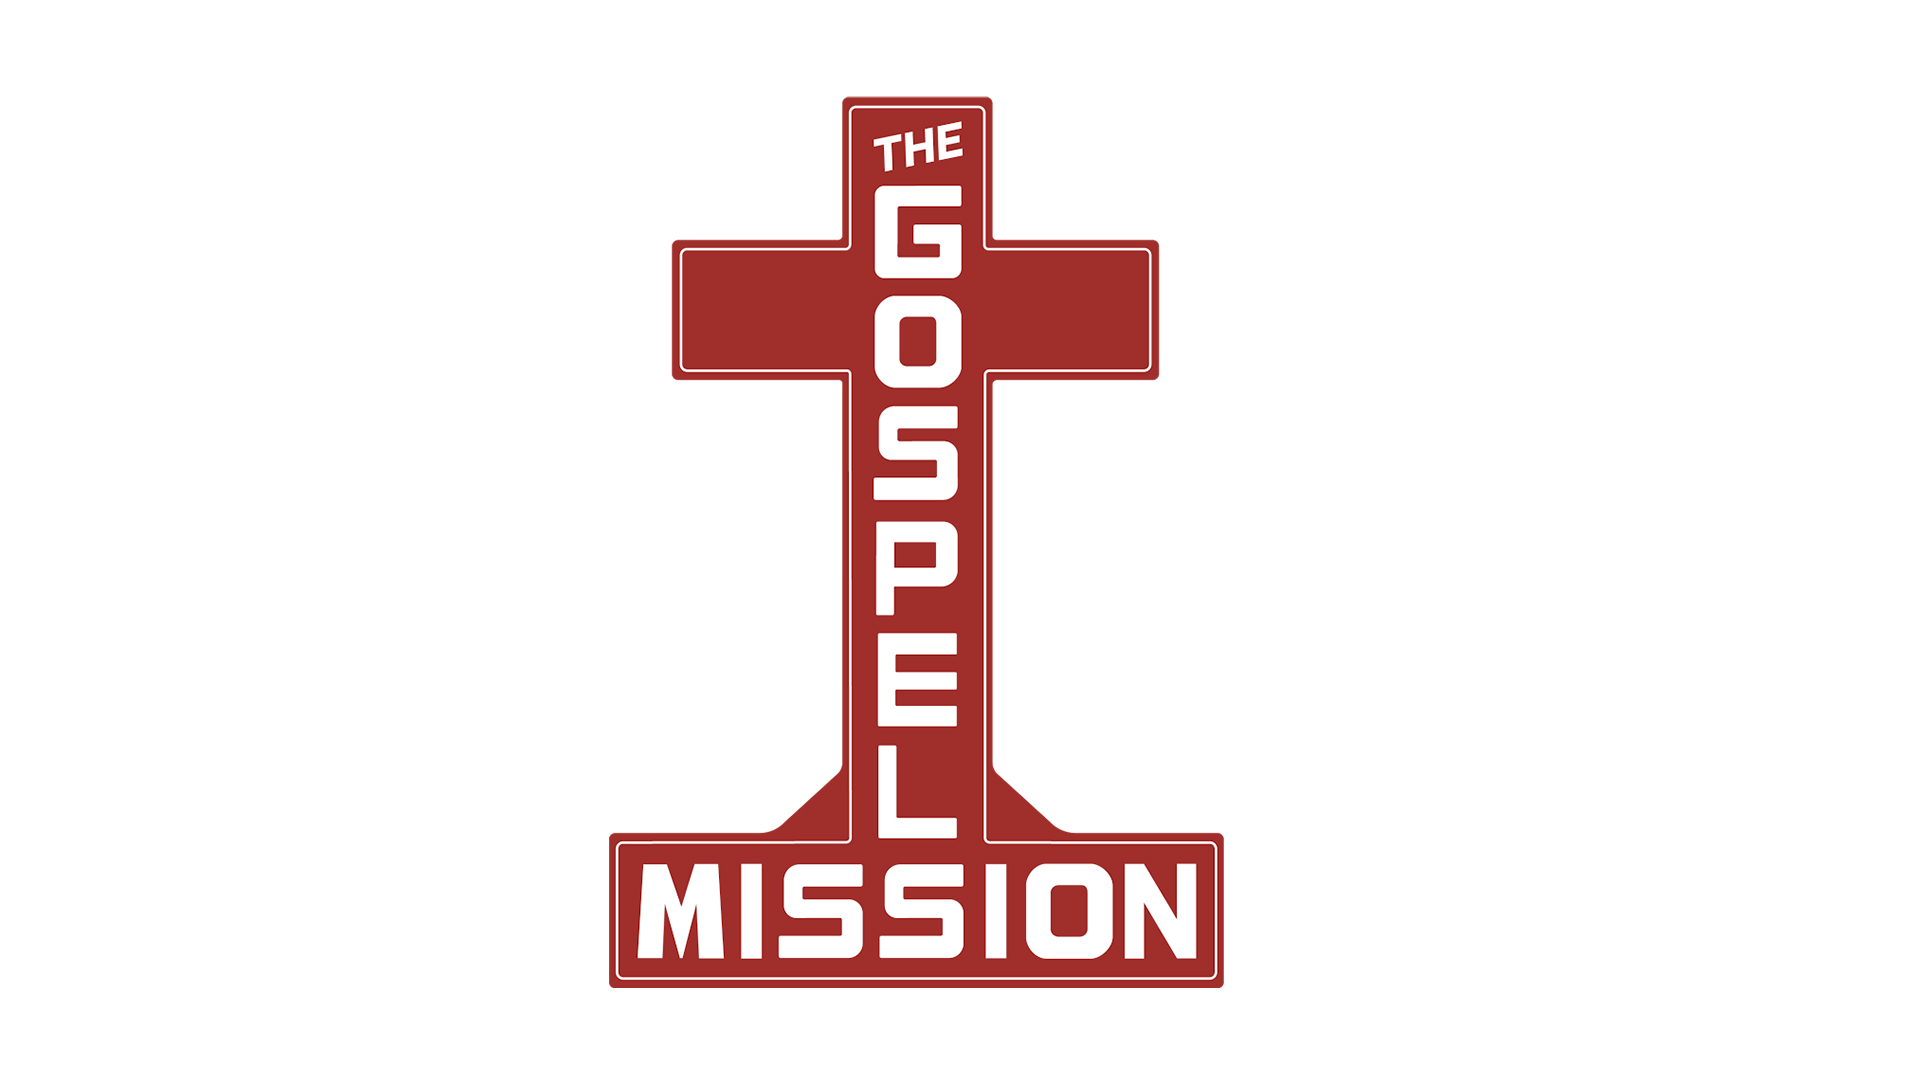 mission@thegospelmission.org